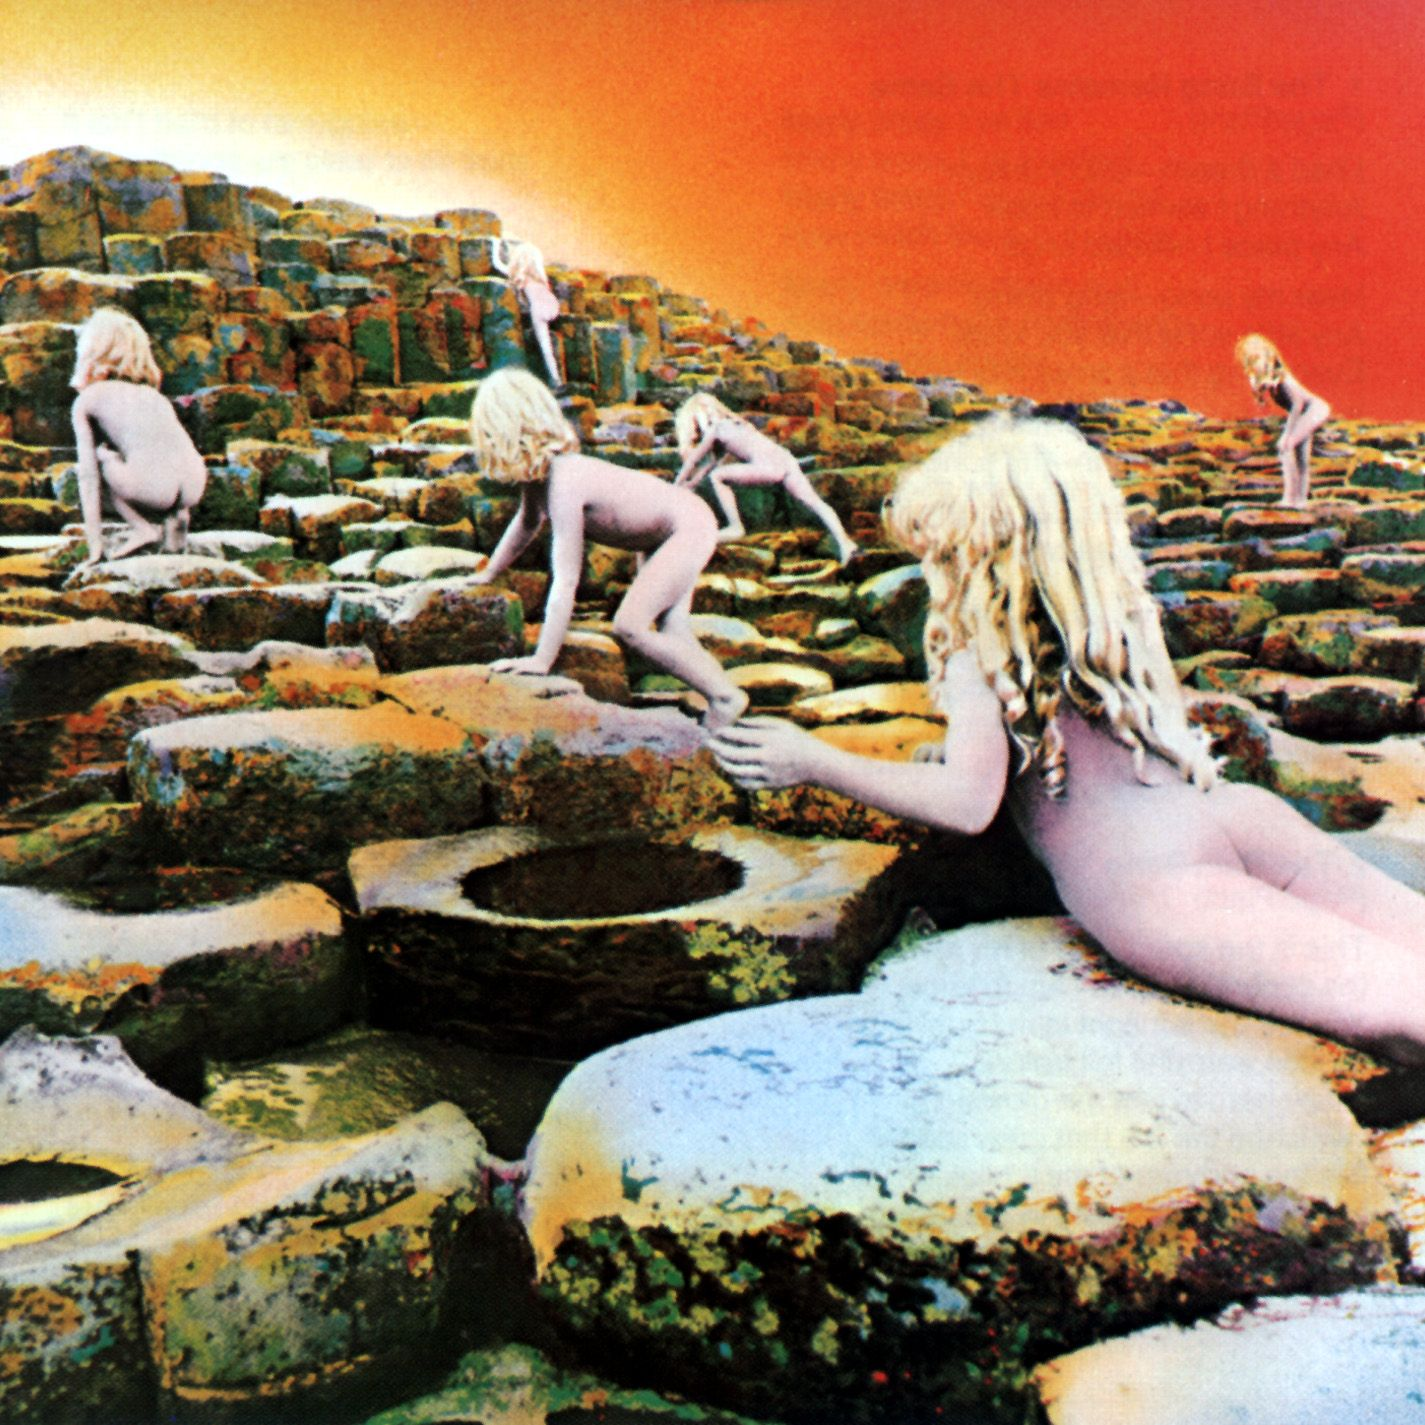 http://2.bp.blogspot.com/-8nZF_0qITv0/TqbNsQcrcdI/AAAAAAAABGk/iA1dZcmWR_A/s1600/Led_Zeppelin+-+Houses_of_the_Holy.jpg